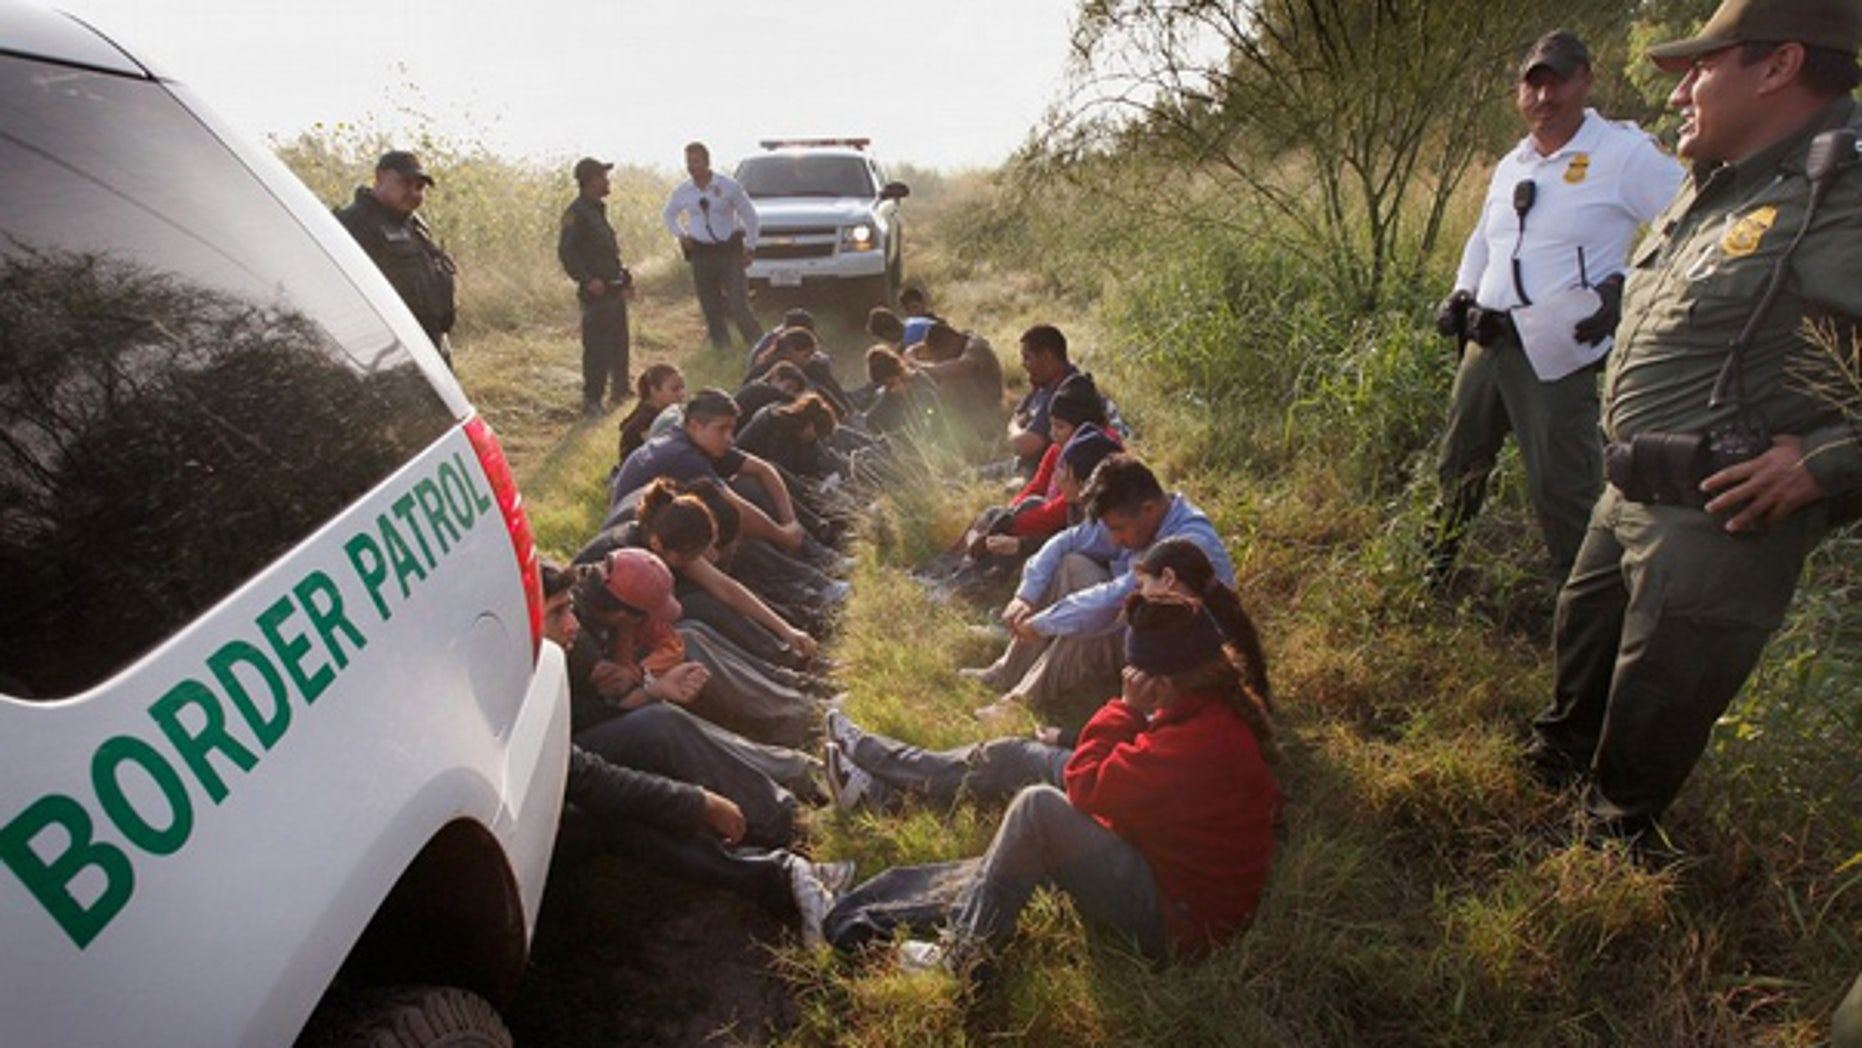 May 28: Border Patrol agents detain undocumented immigrants apprehended near McAllen, Texas.